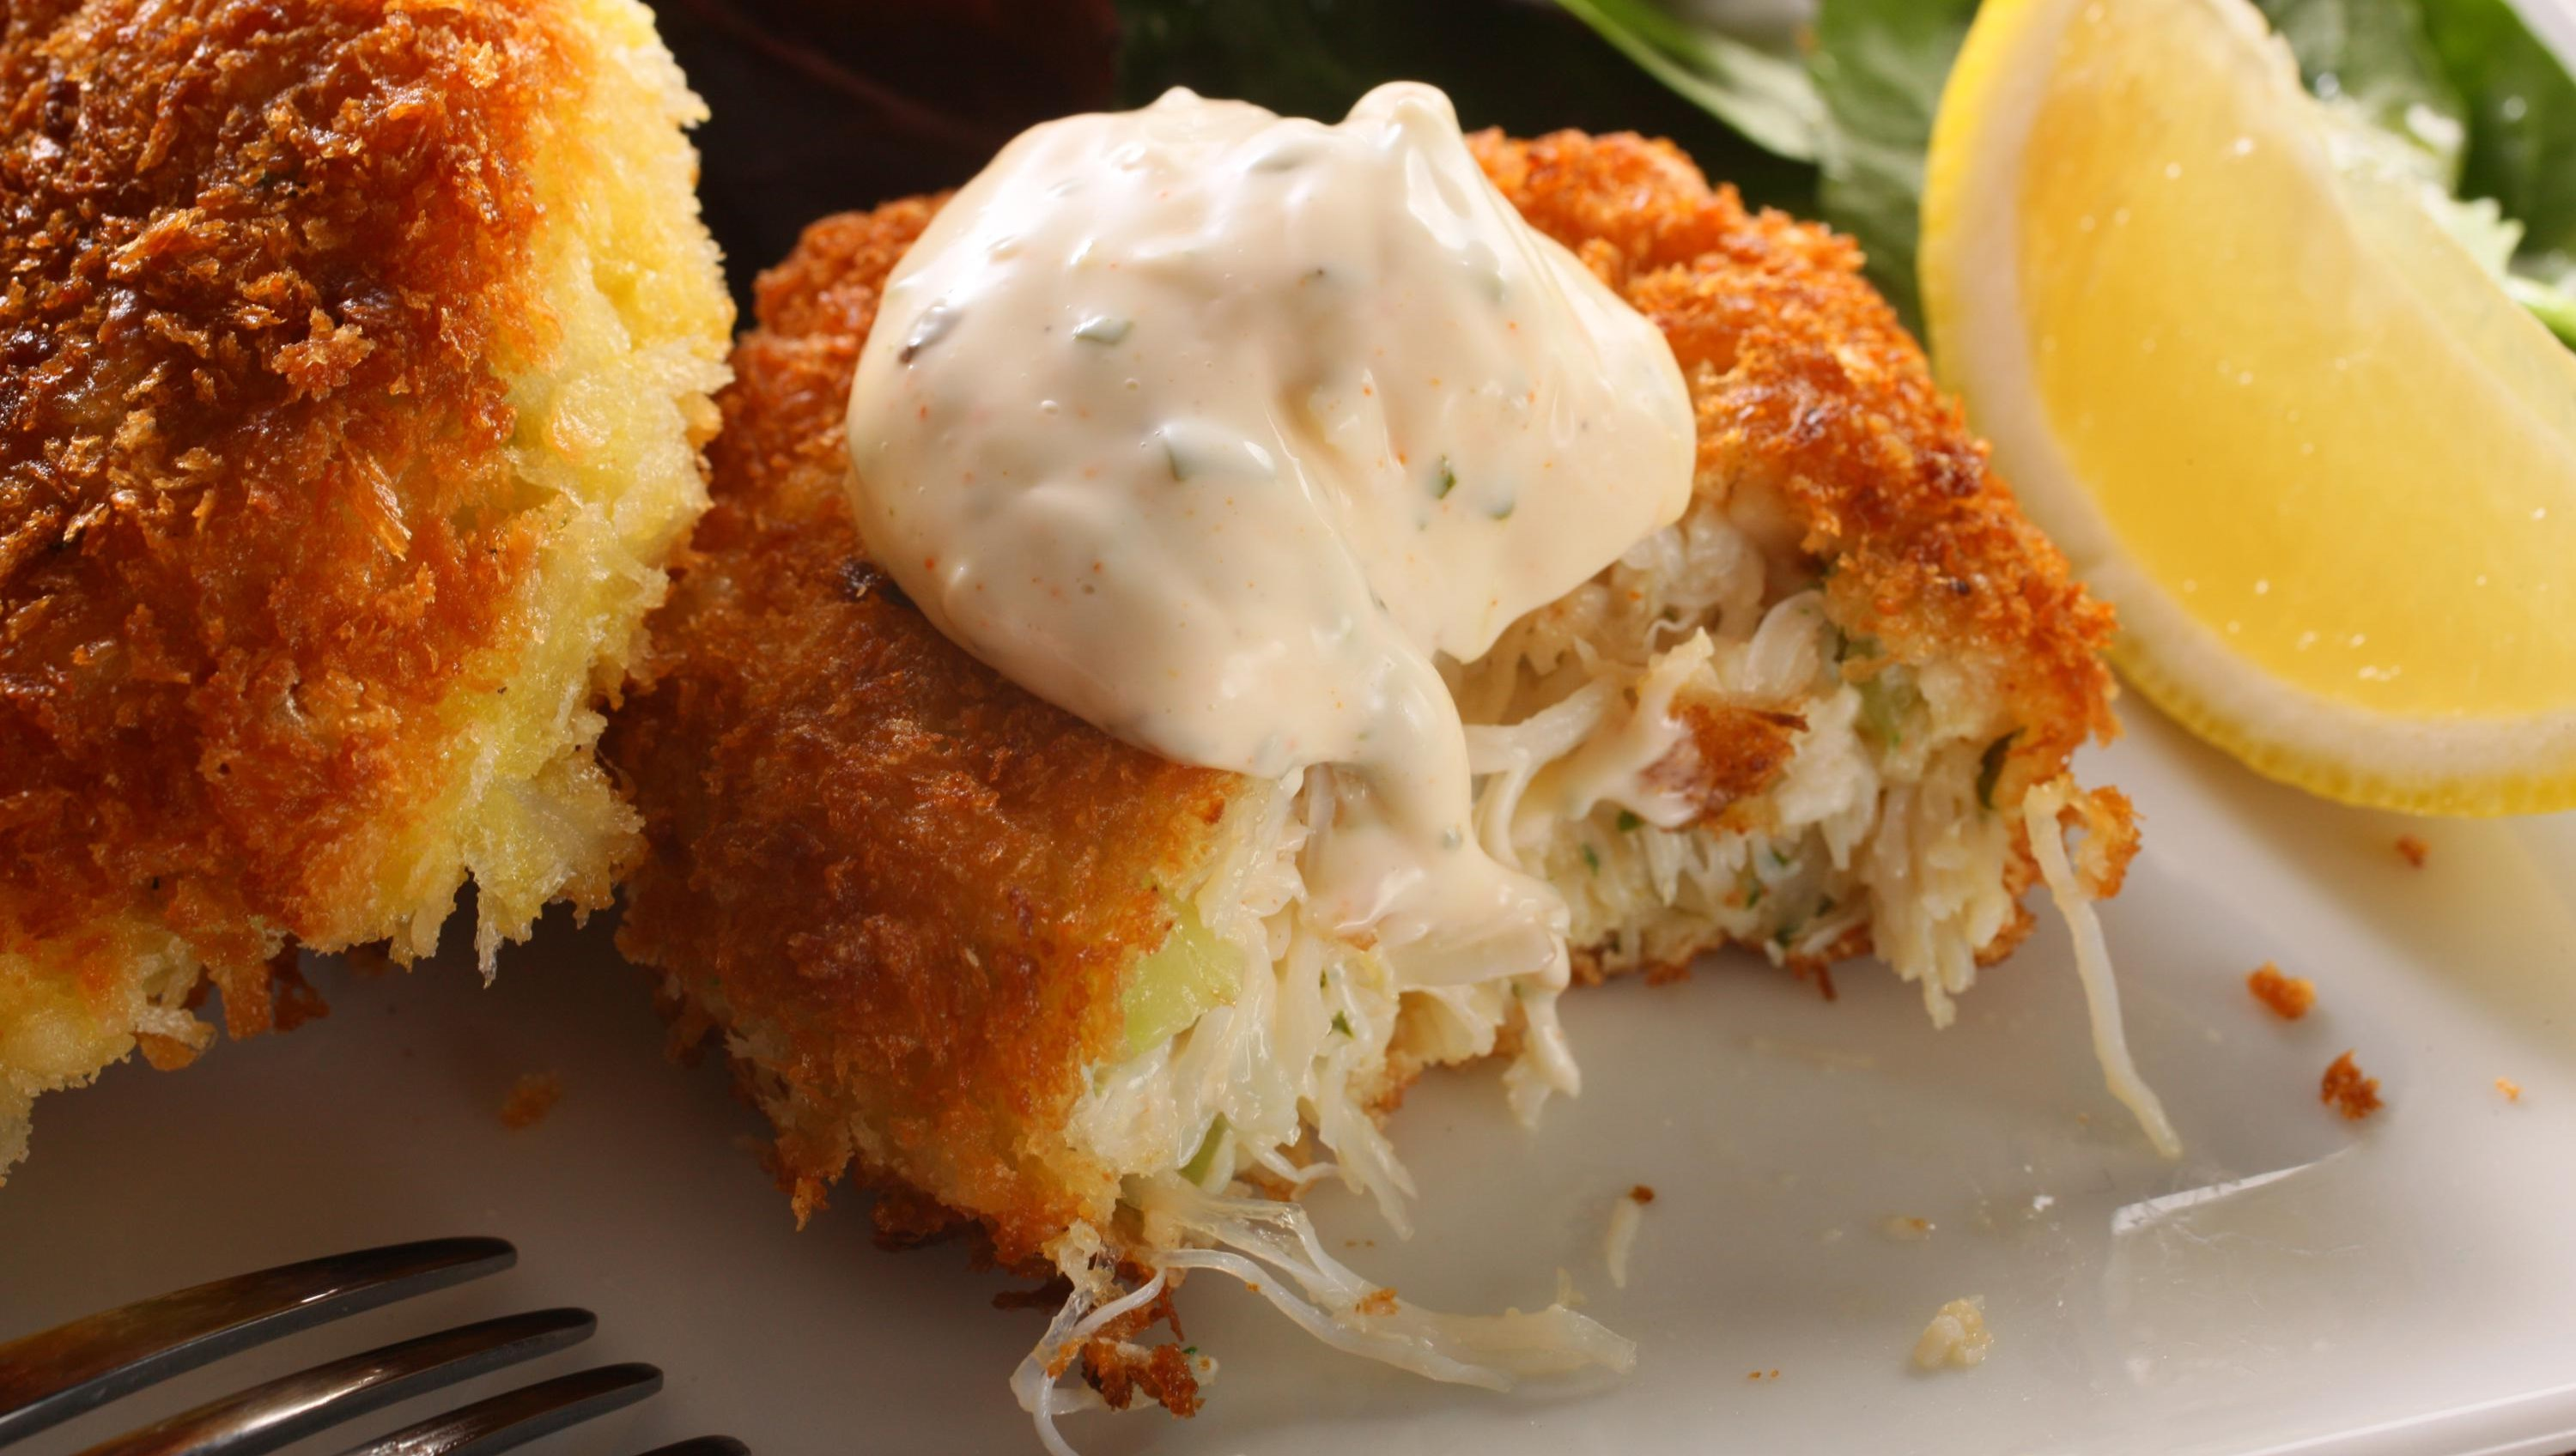 Zing up your evening snack with Sardine-Potato Cakes!